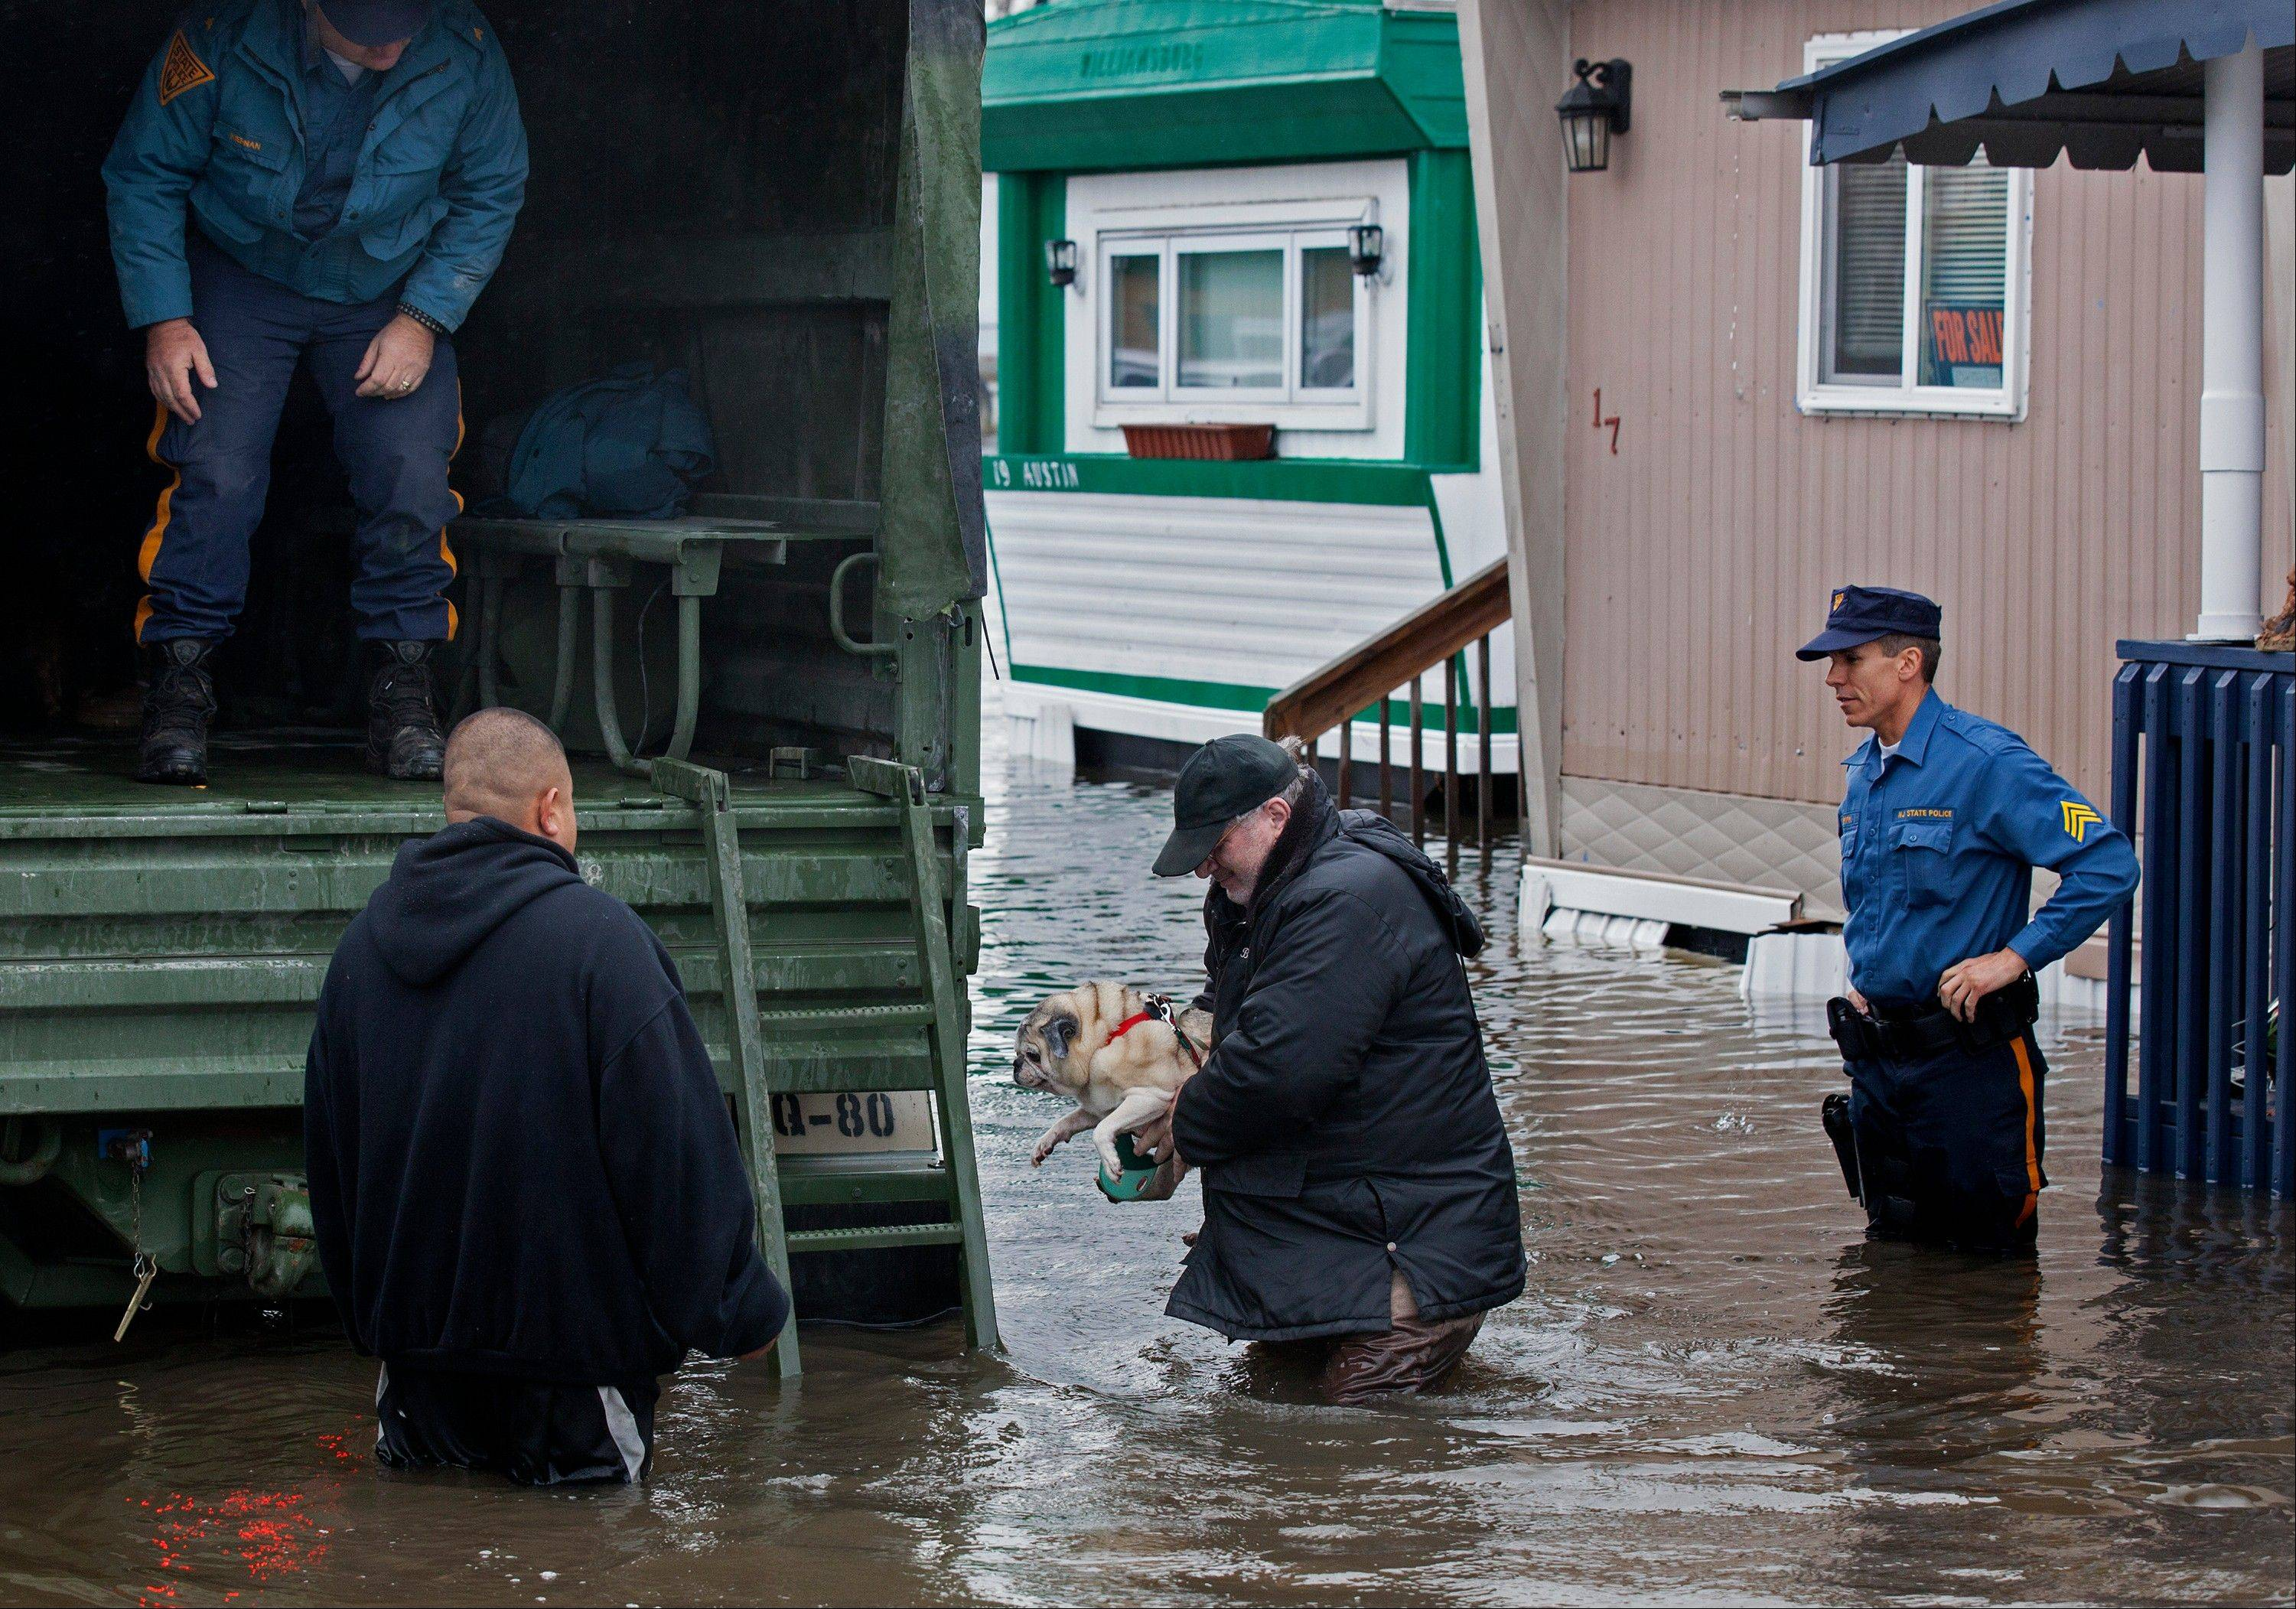 With the aid of New Jersey State Police, a man walks with his dog to a National Guard vehicle after leaving his flooded home at the Metropolitan Trailer Park in Moonachie, N.J., Tuesday, Oct. 30, 2012, in the wake of superstorm Sandy. Sandy arrived along the East Coast and morphed into a huge and problematic system, putting more than 7.5 million homes and businesses in the dark and causing a number of deaths.